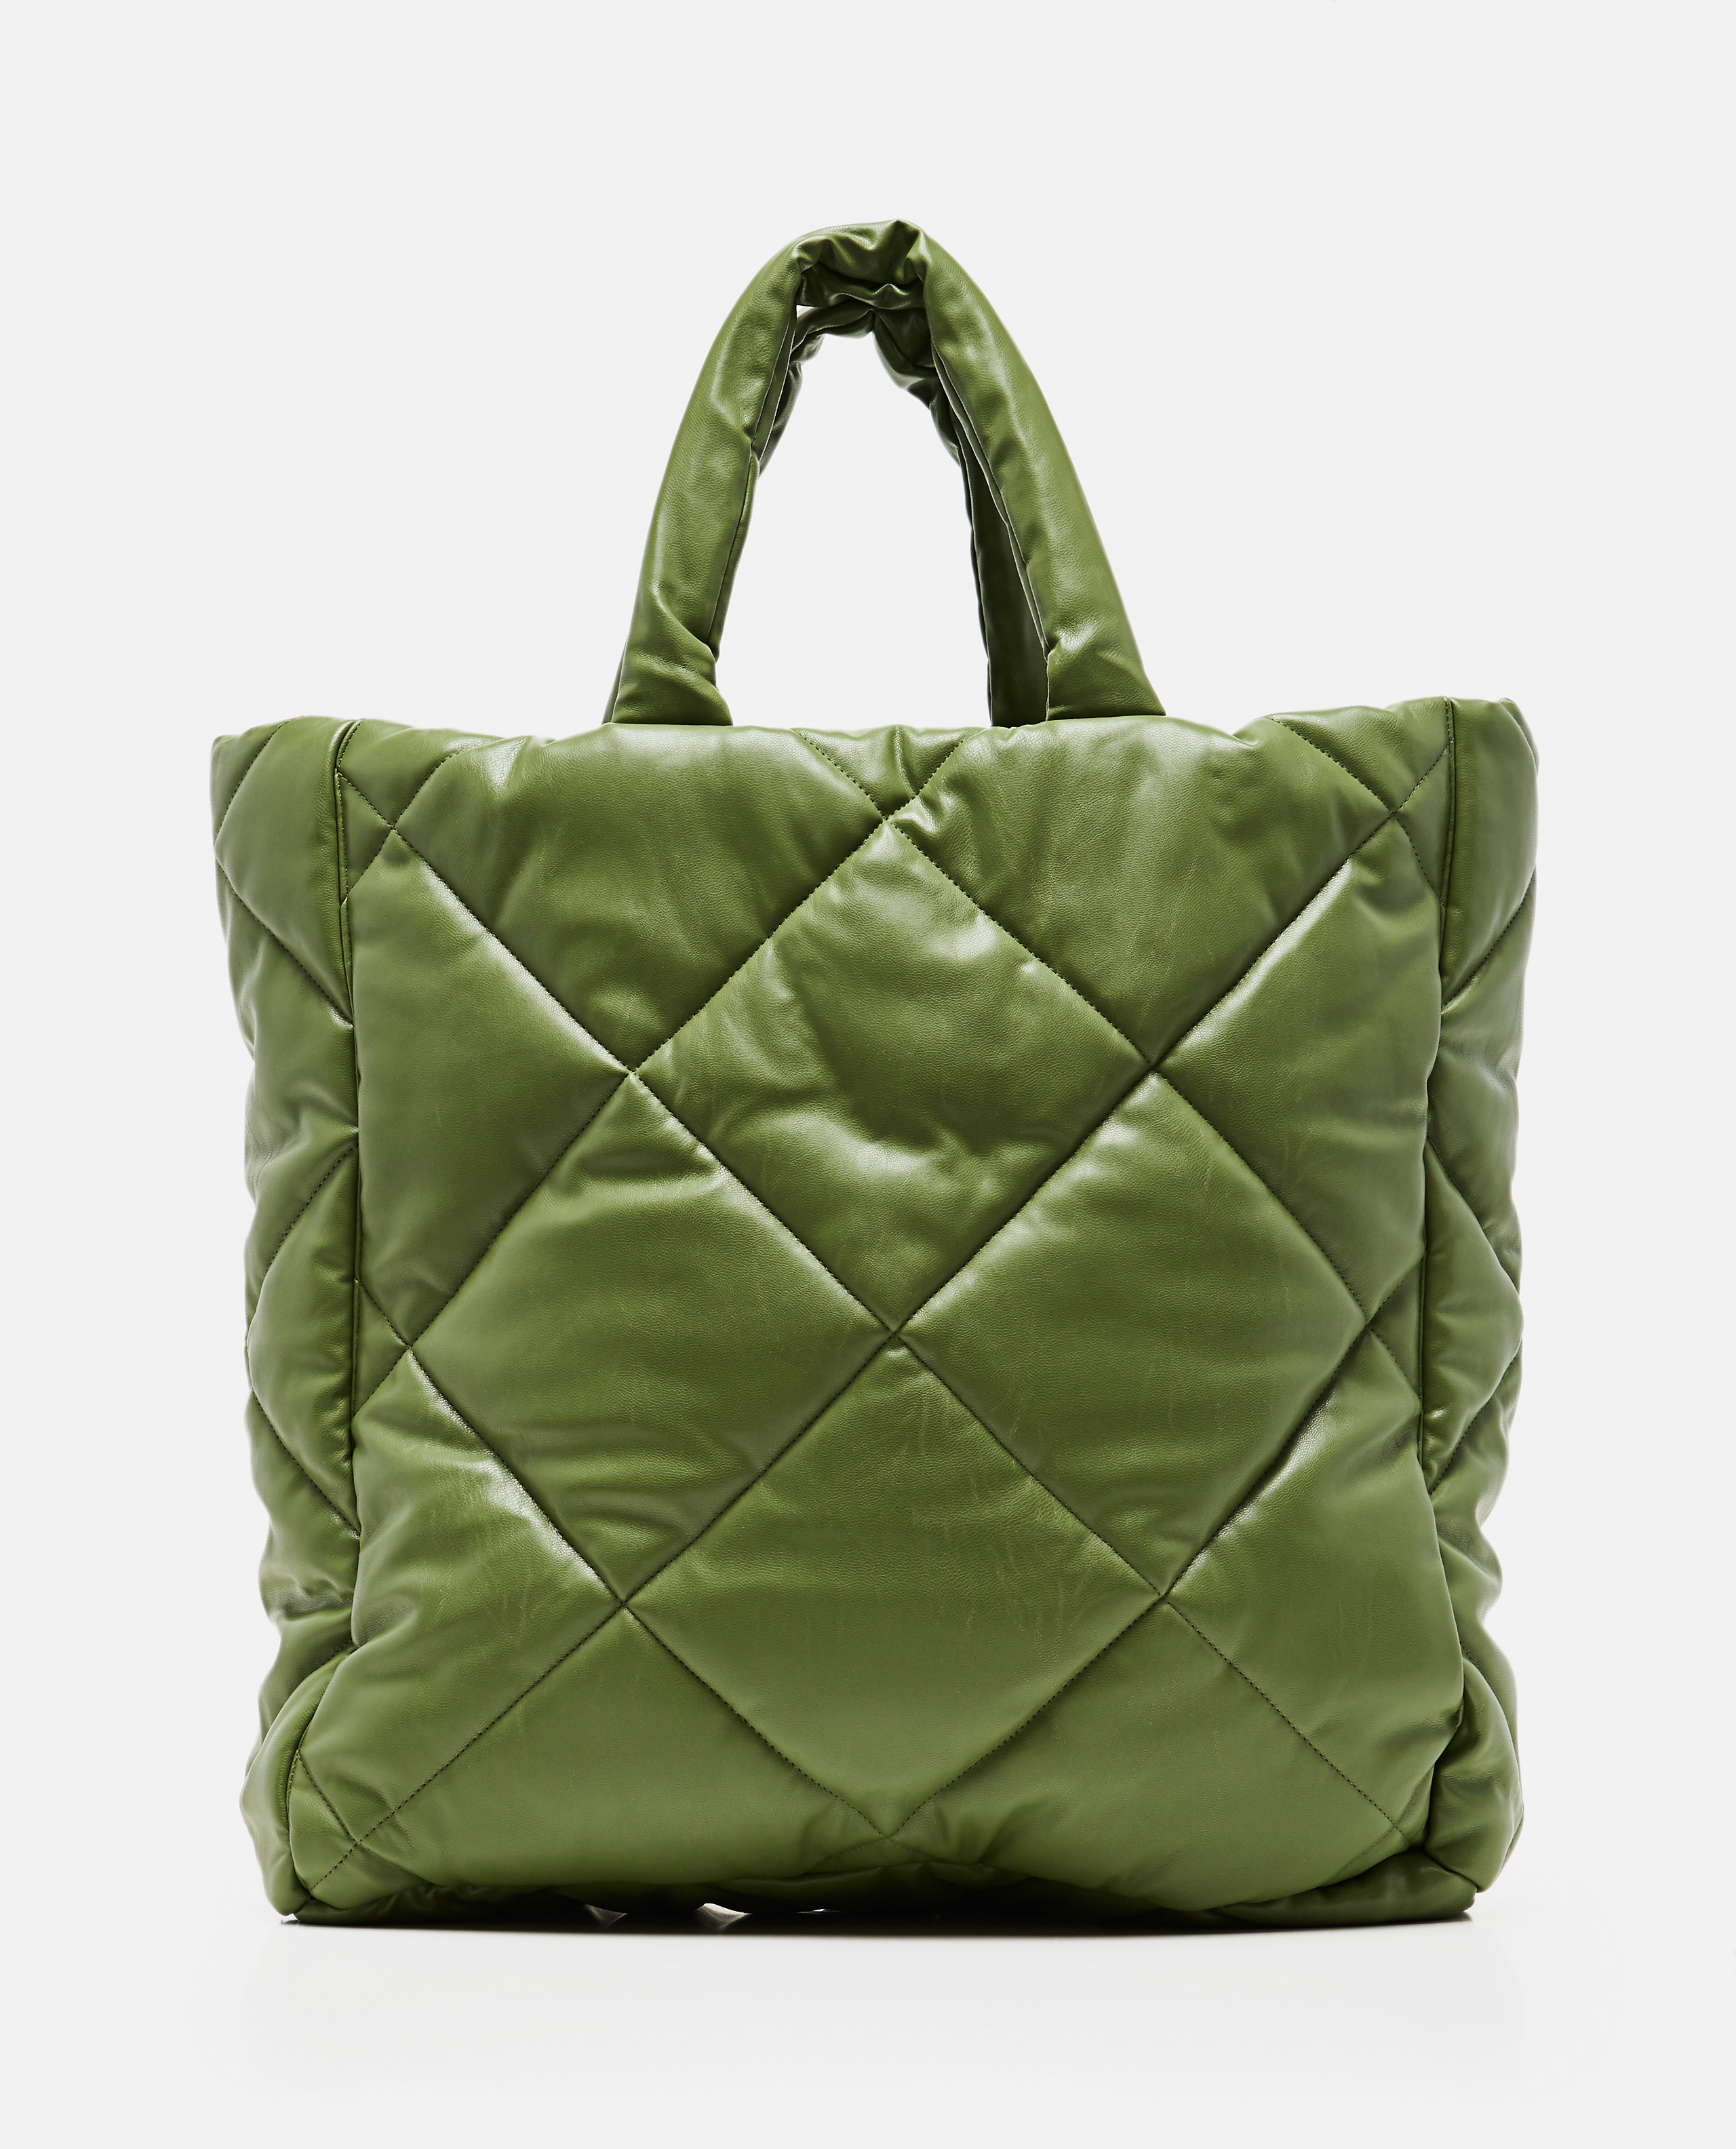 Assante Tote Bag